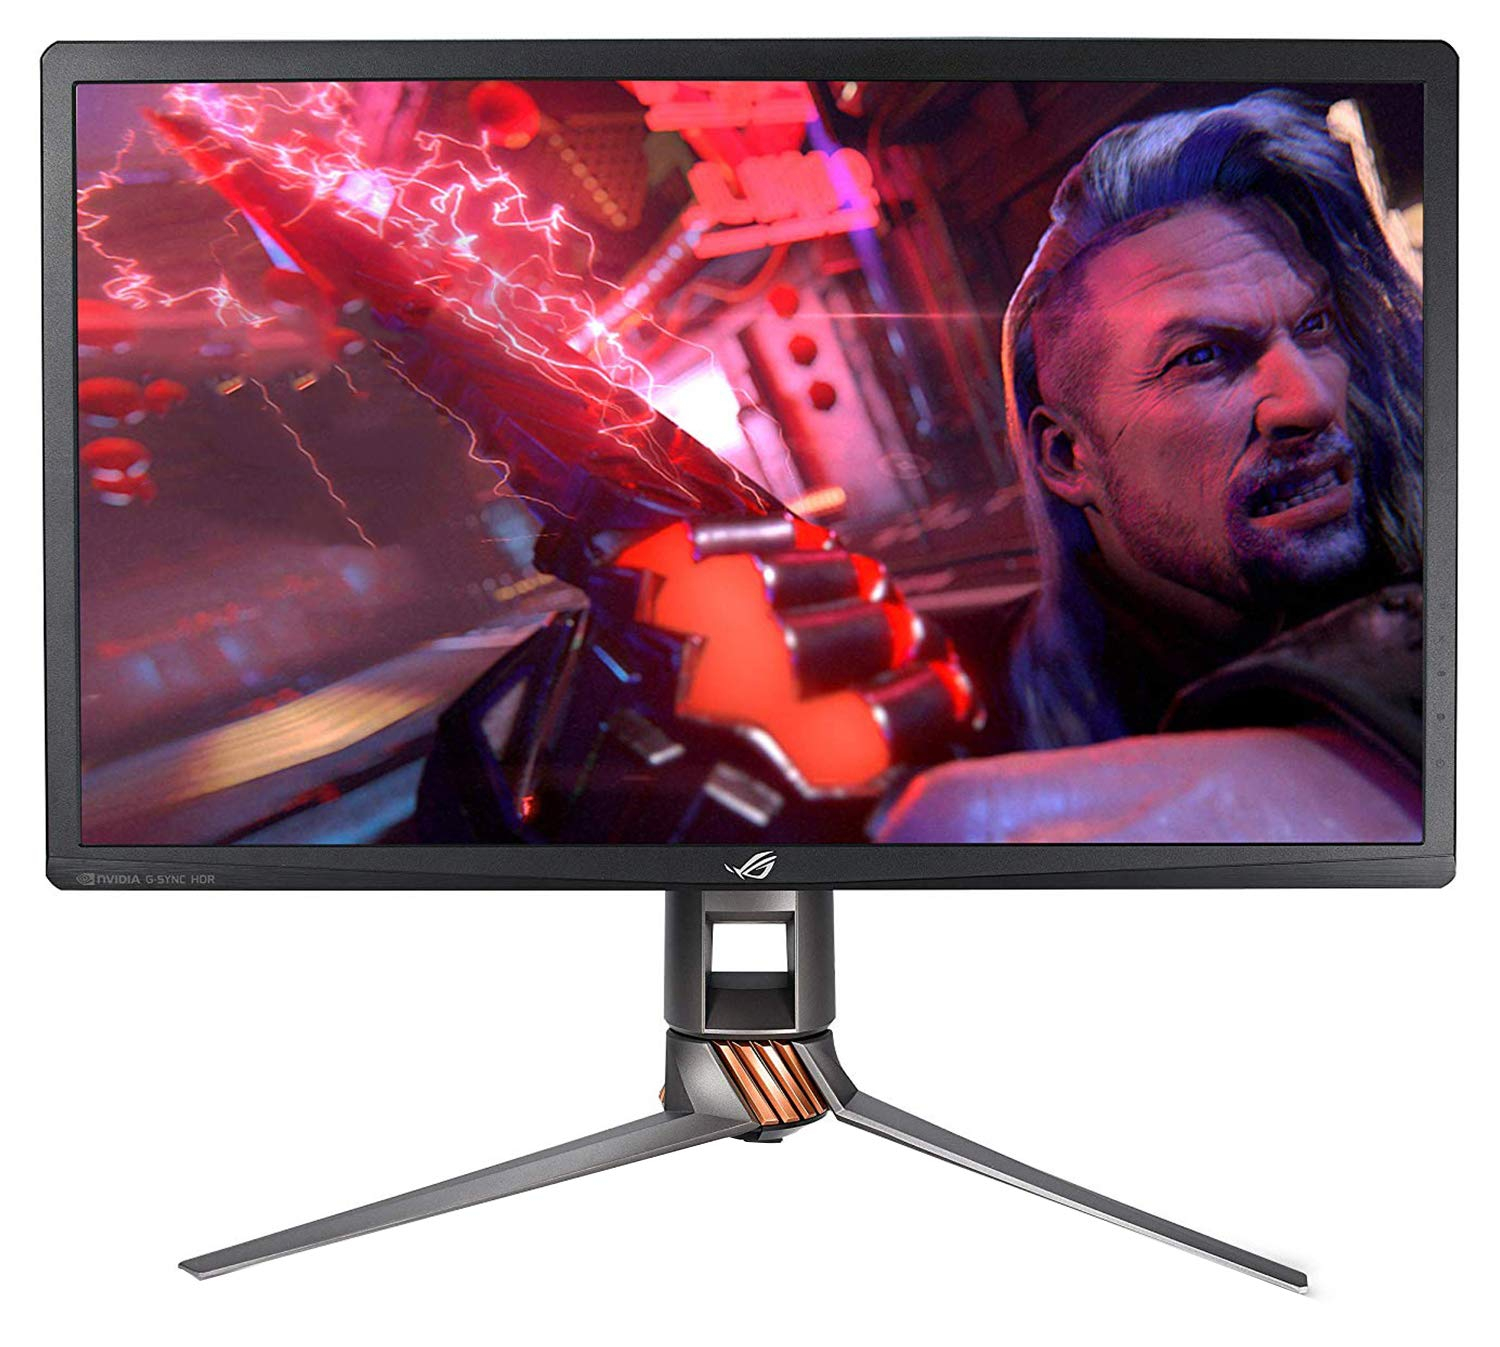 The 8 Best & Cheap 144Hz Gaming Monitors (Reviewed December 2019) 7